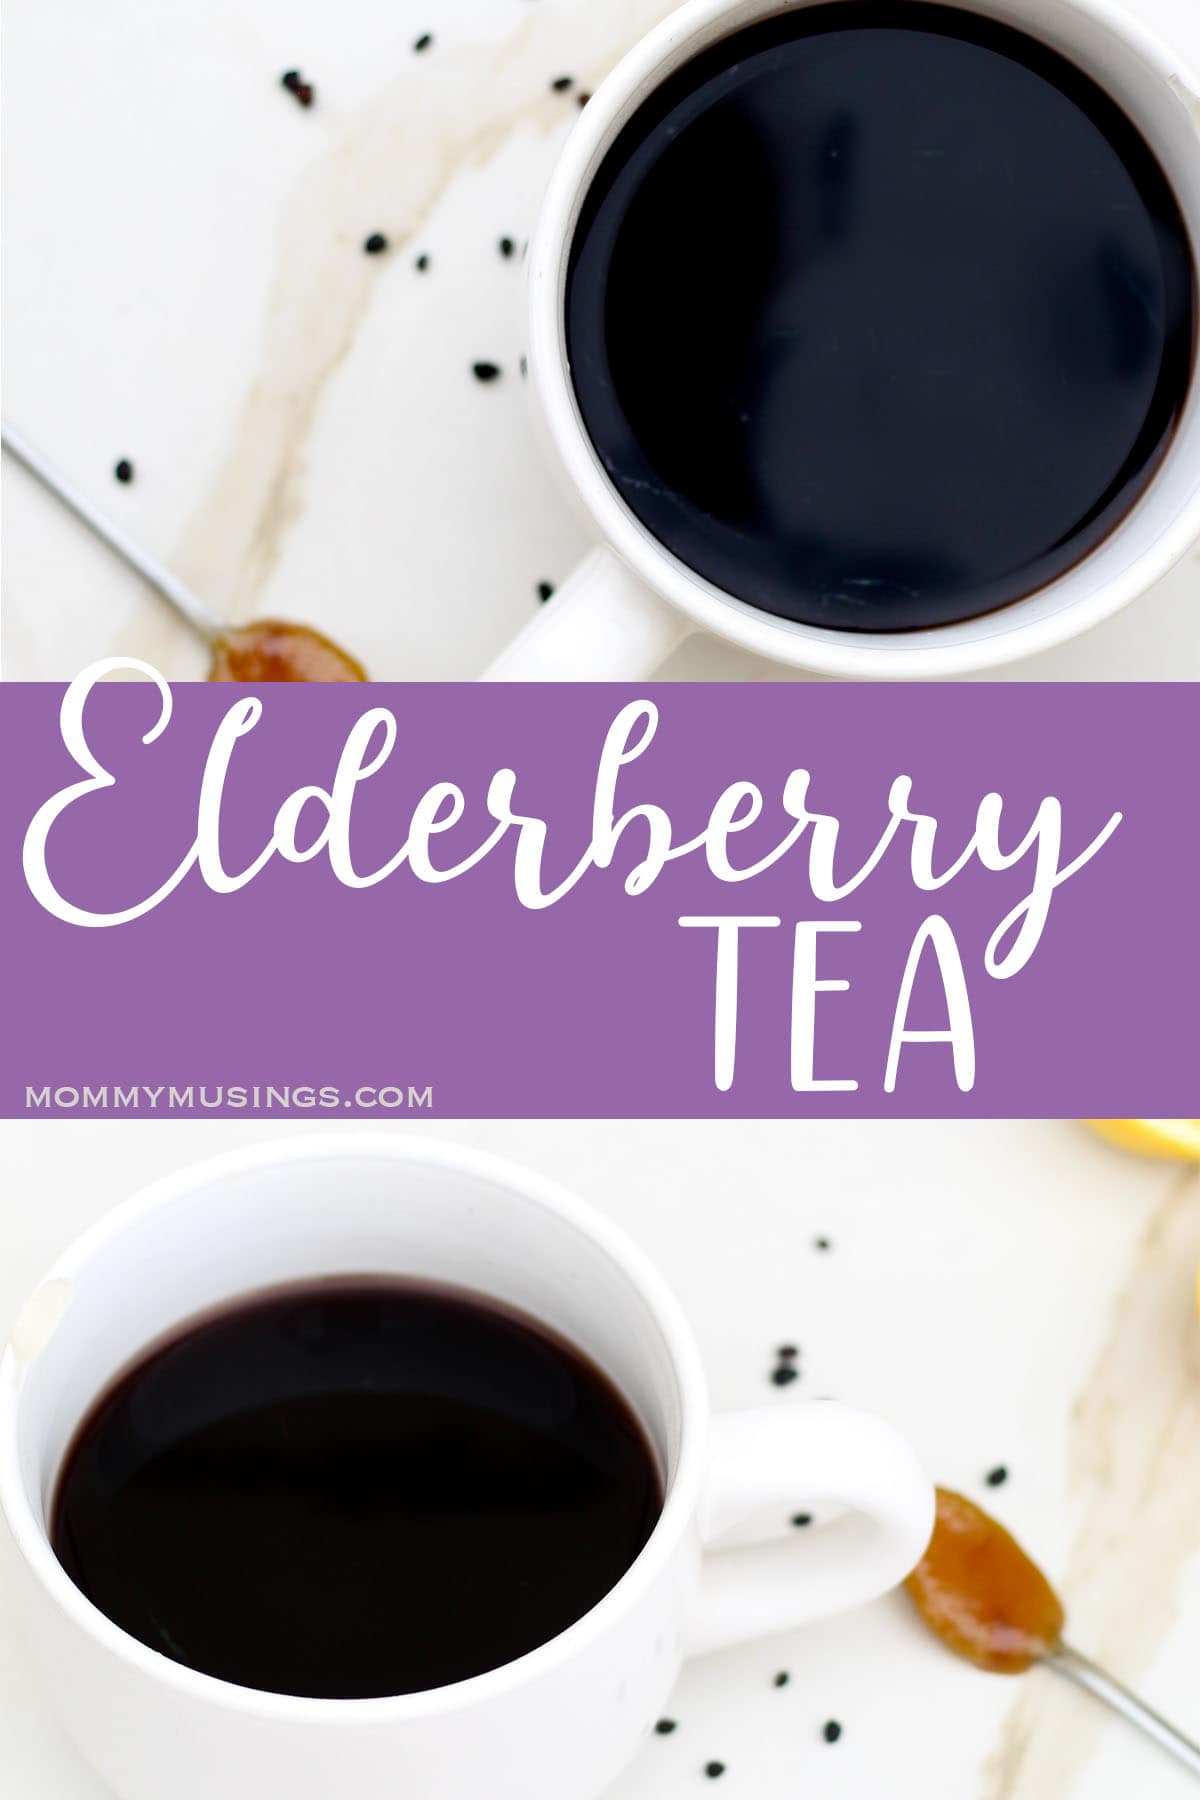 elderberry tea photo collage